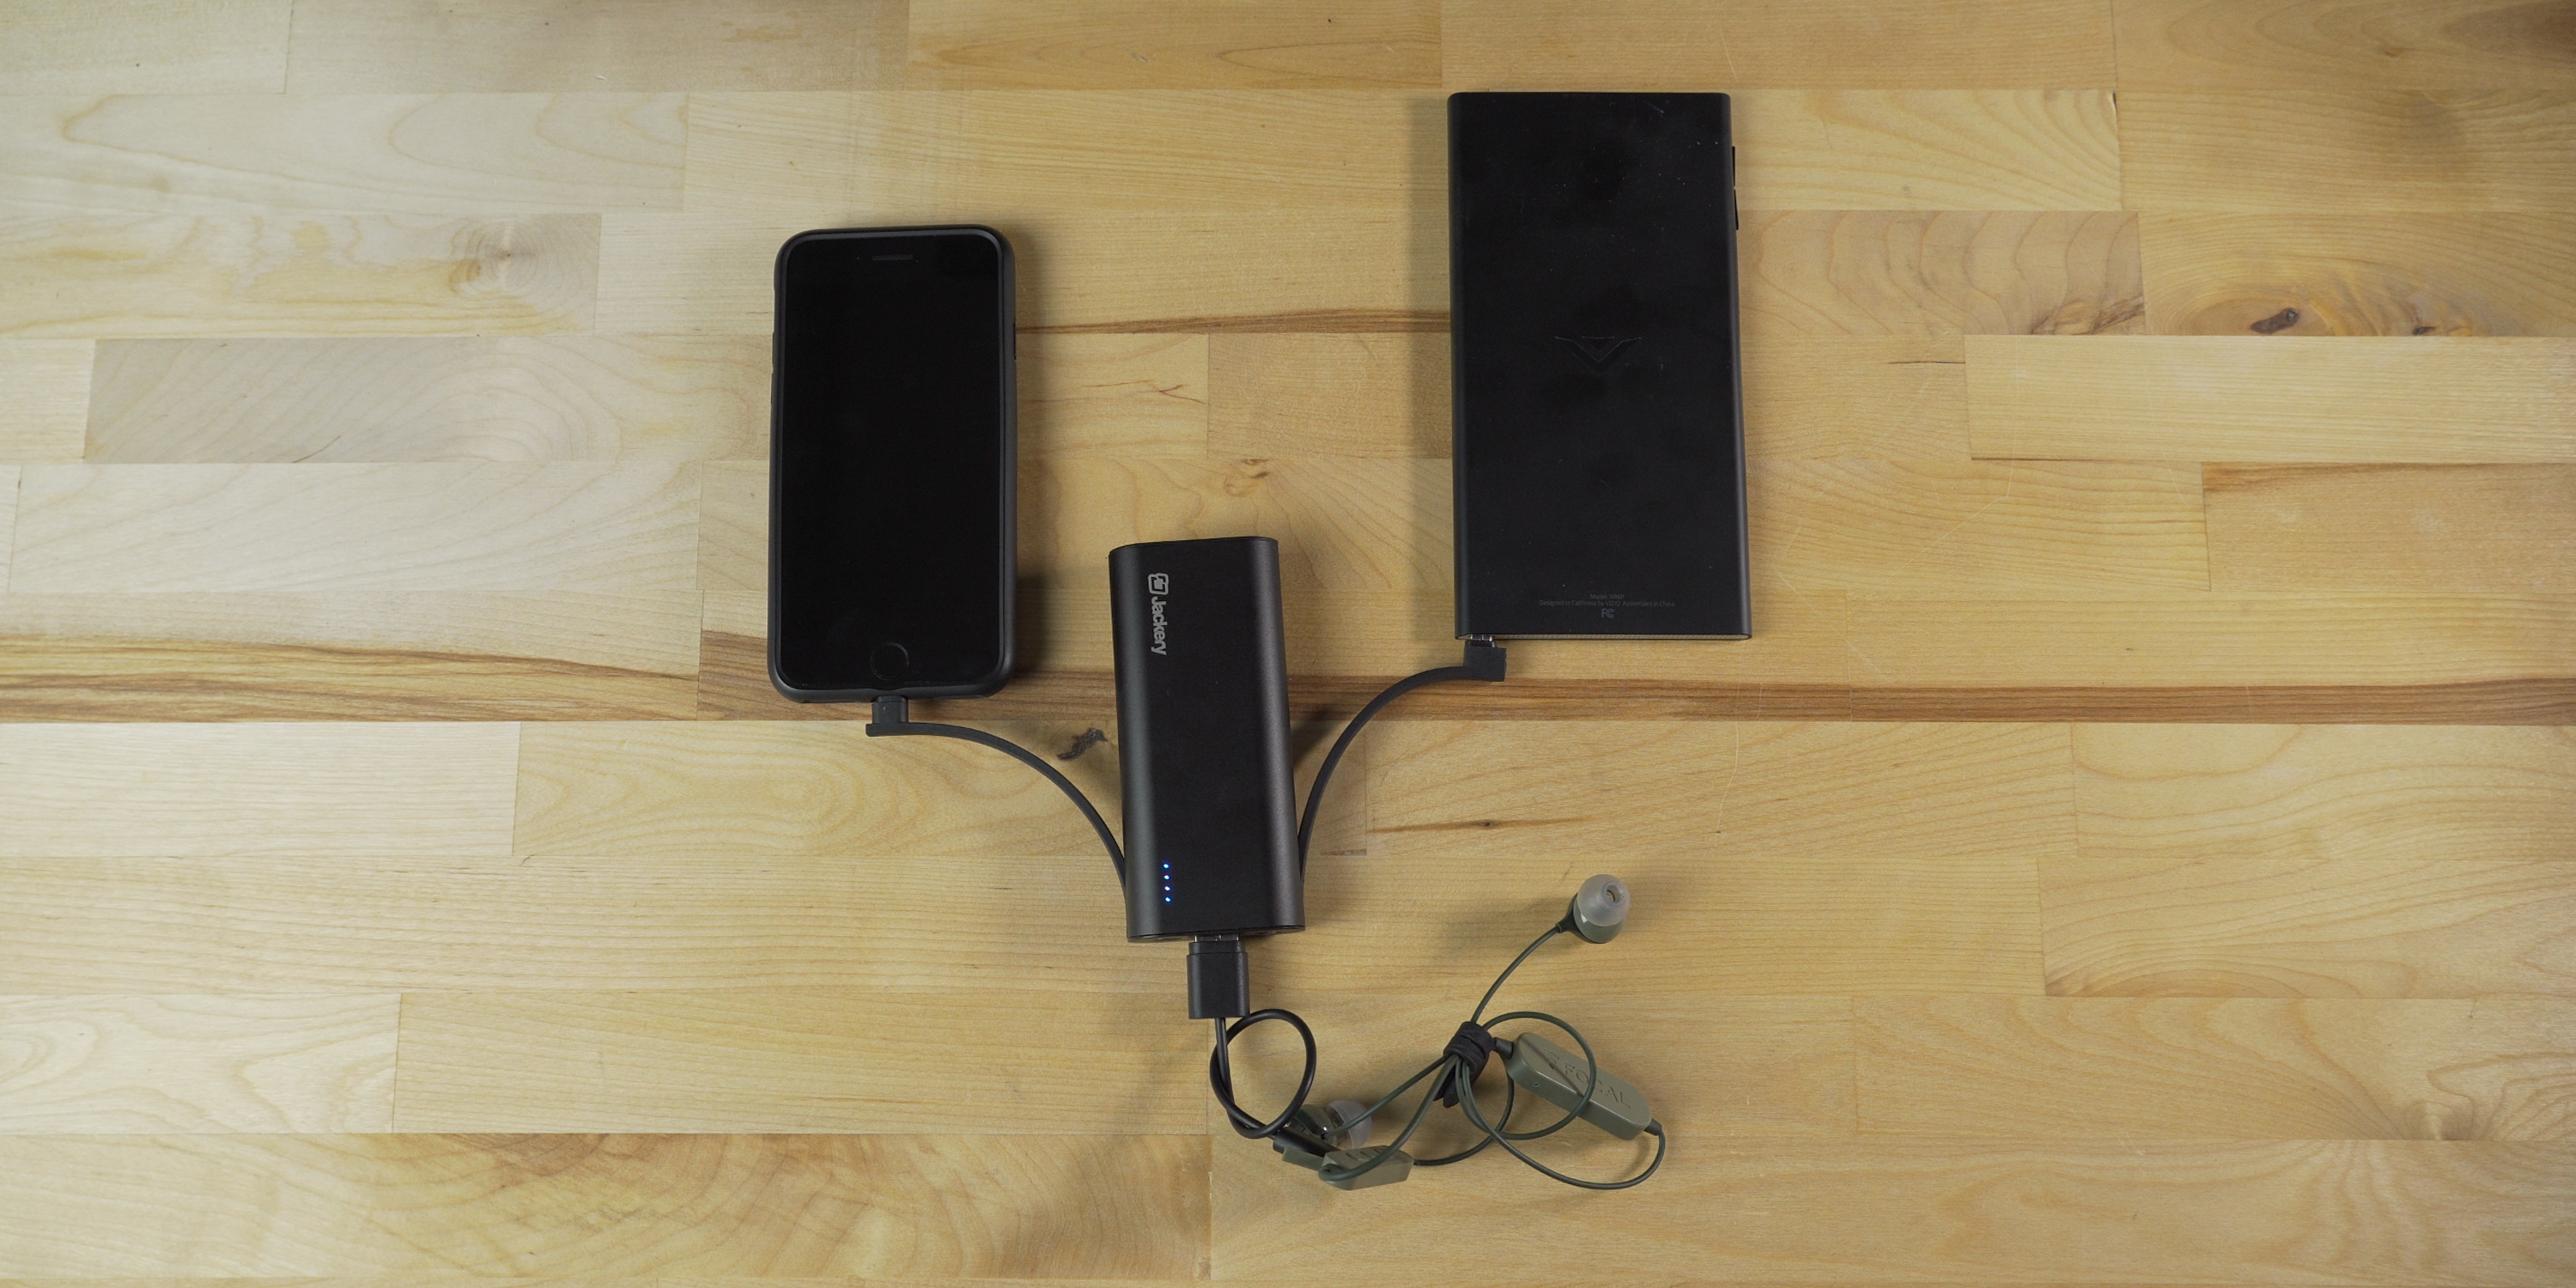 Jackery Bolt charging 3 devices